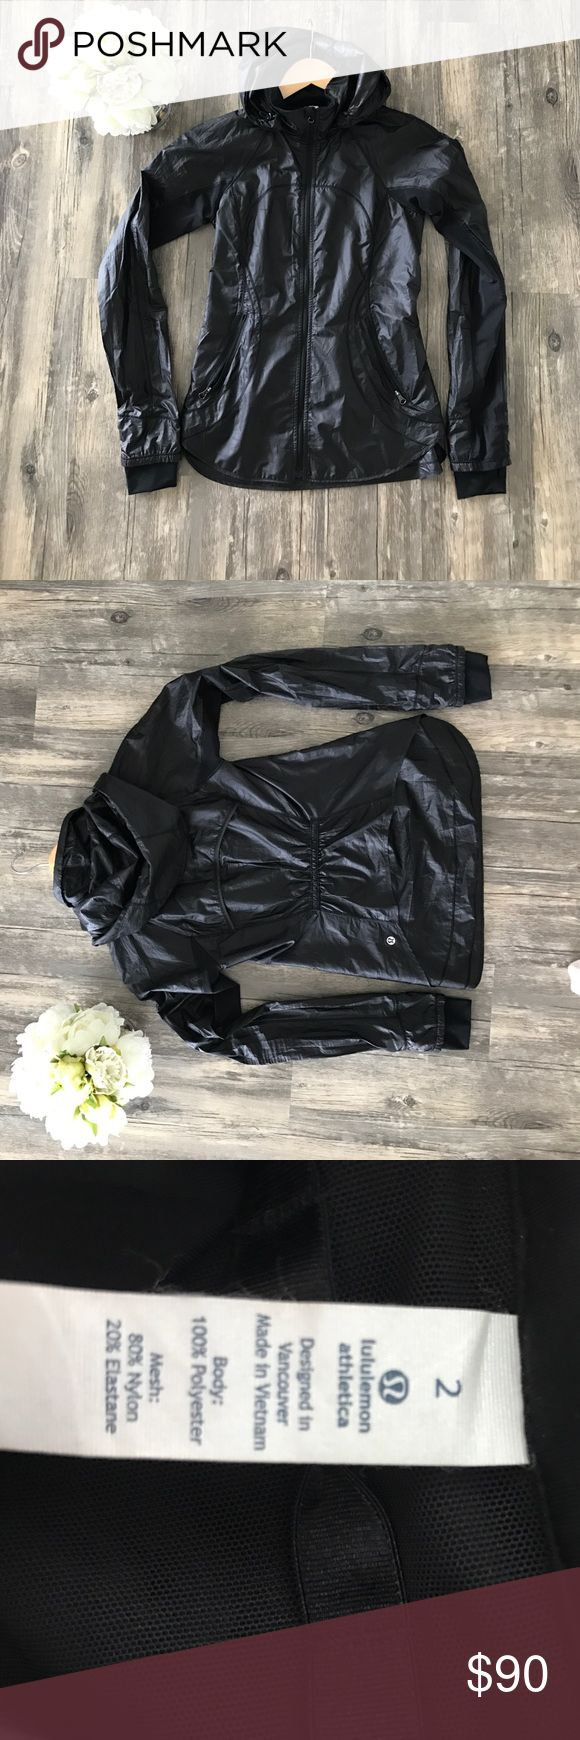 Lululemon Lightweight Jacket Black lightweight waterproof jacket. Mesh inserts in sleeves. Only worn once. Perfect condition. lululemon athletica Jackets & Coats